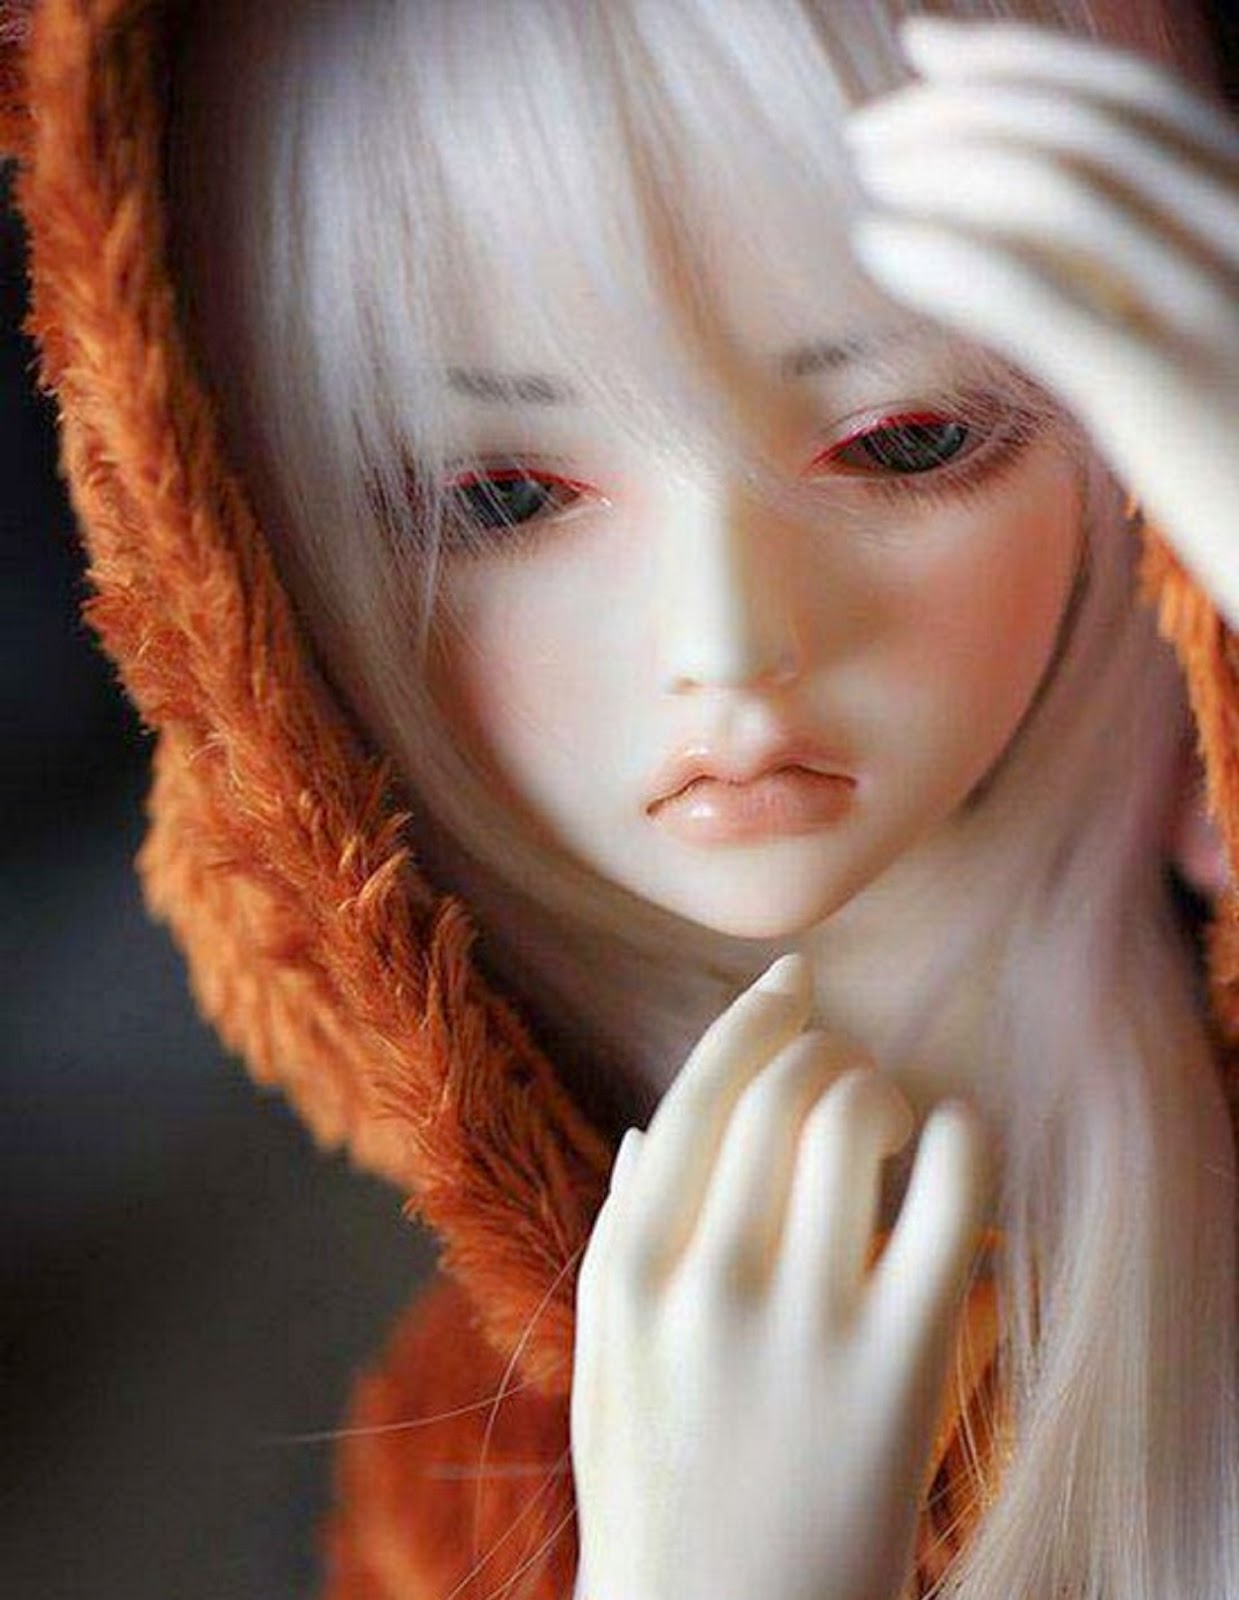 Emotional barbies sad image download free all hd - Wallpaper very sad girl ...